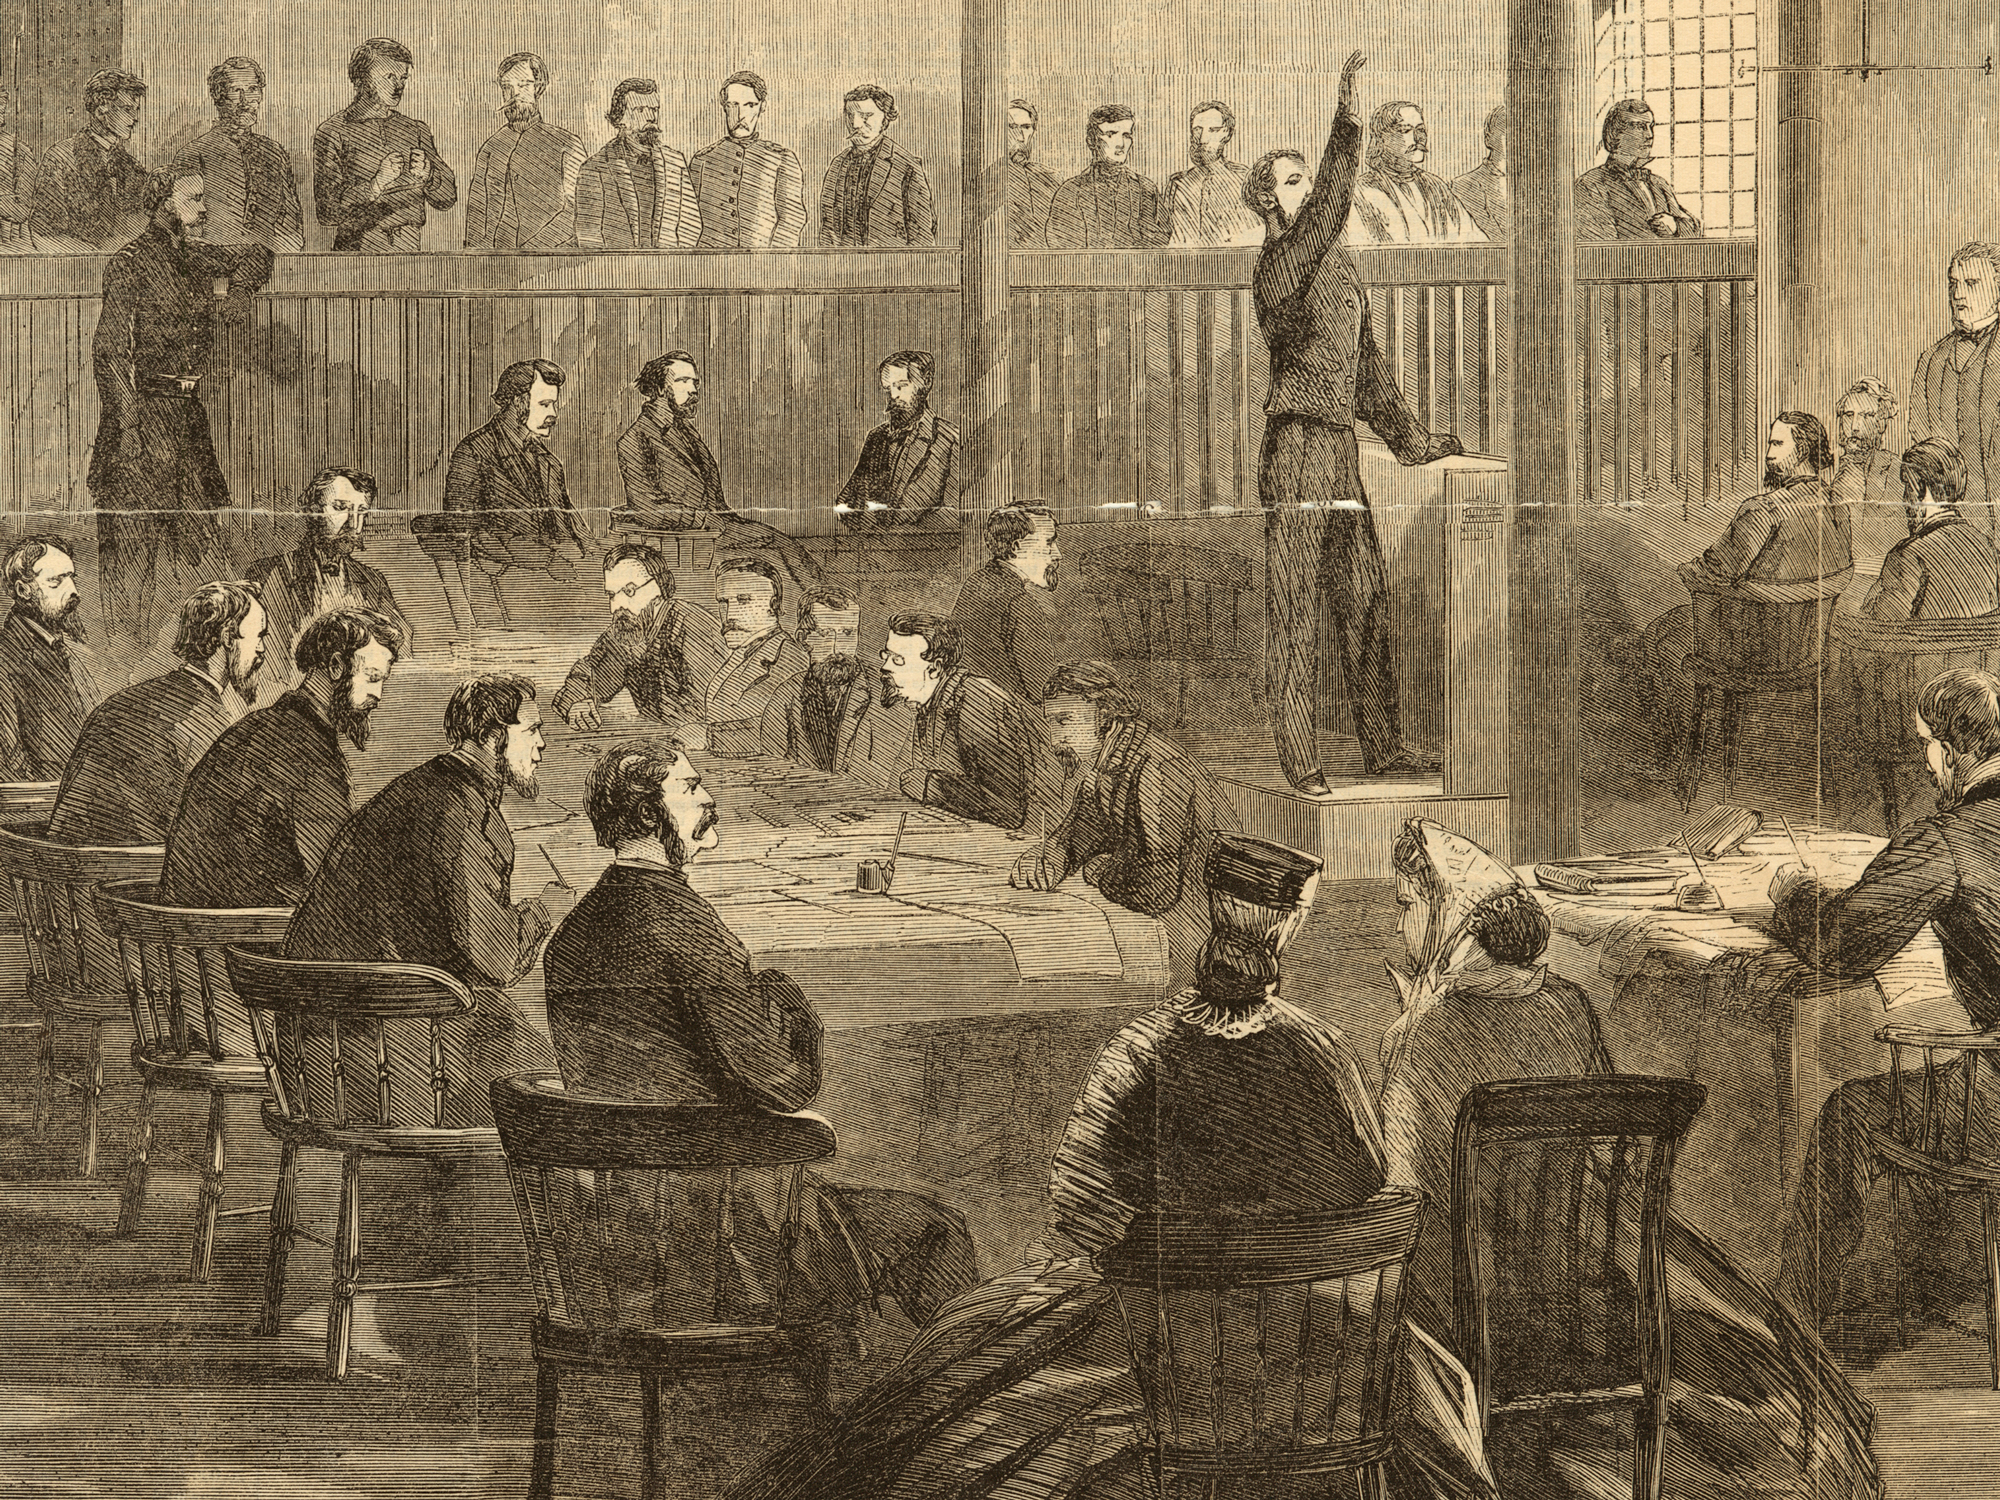 Wood engraving from June 1865 newspaper showing the courtroom at the Old Penitentiary in Washington, D.C., during the trial of the conspirators.